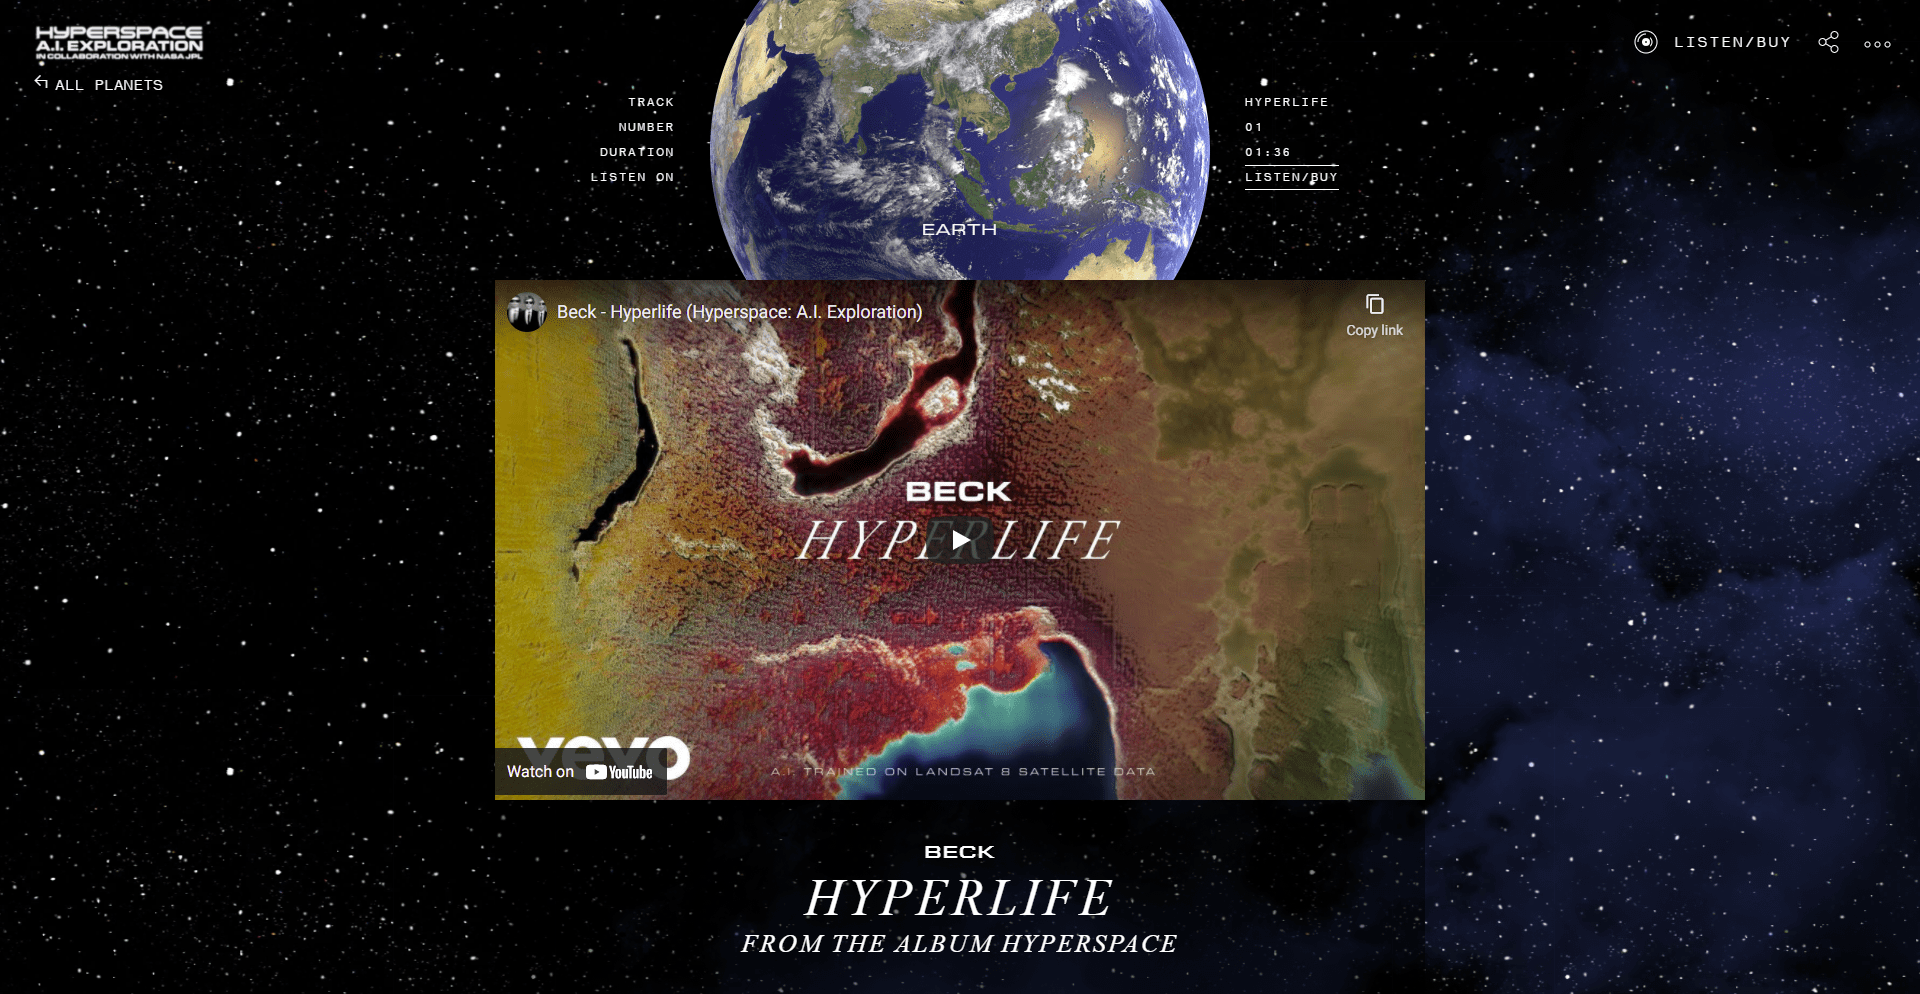 http___hyperspace.beck.com_ Hyperspace AI Exploration_002